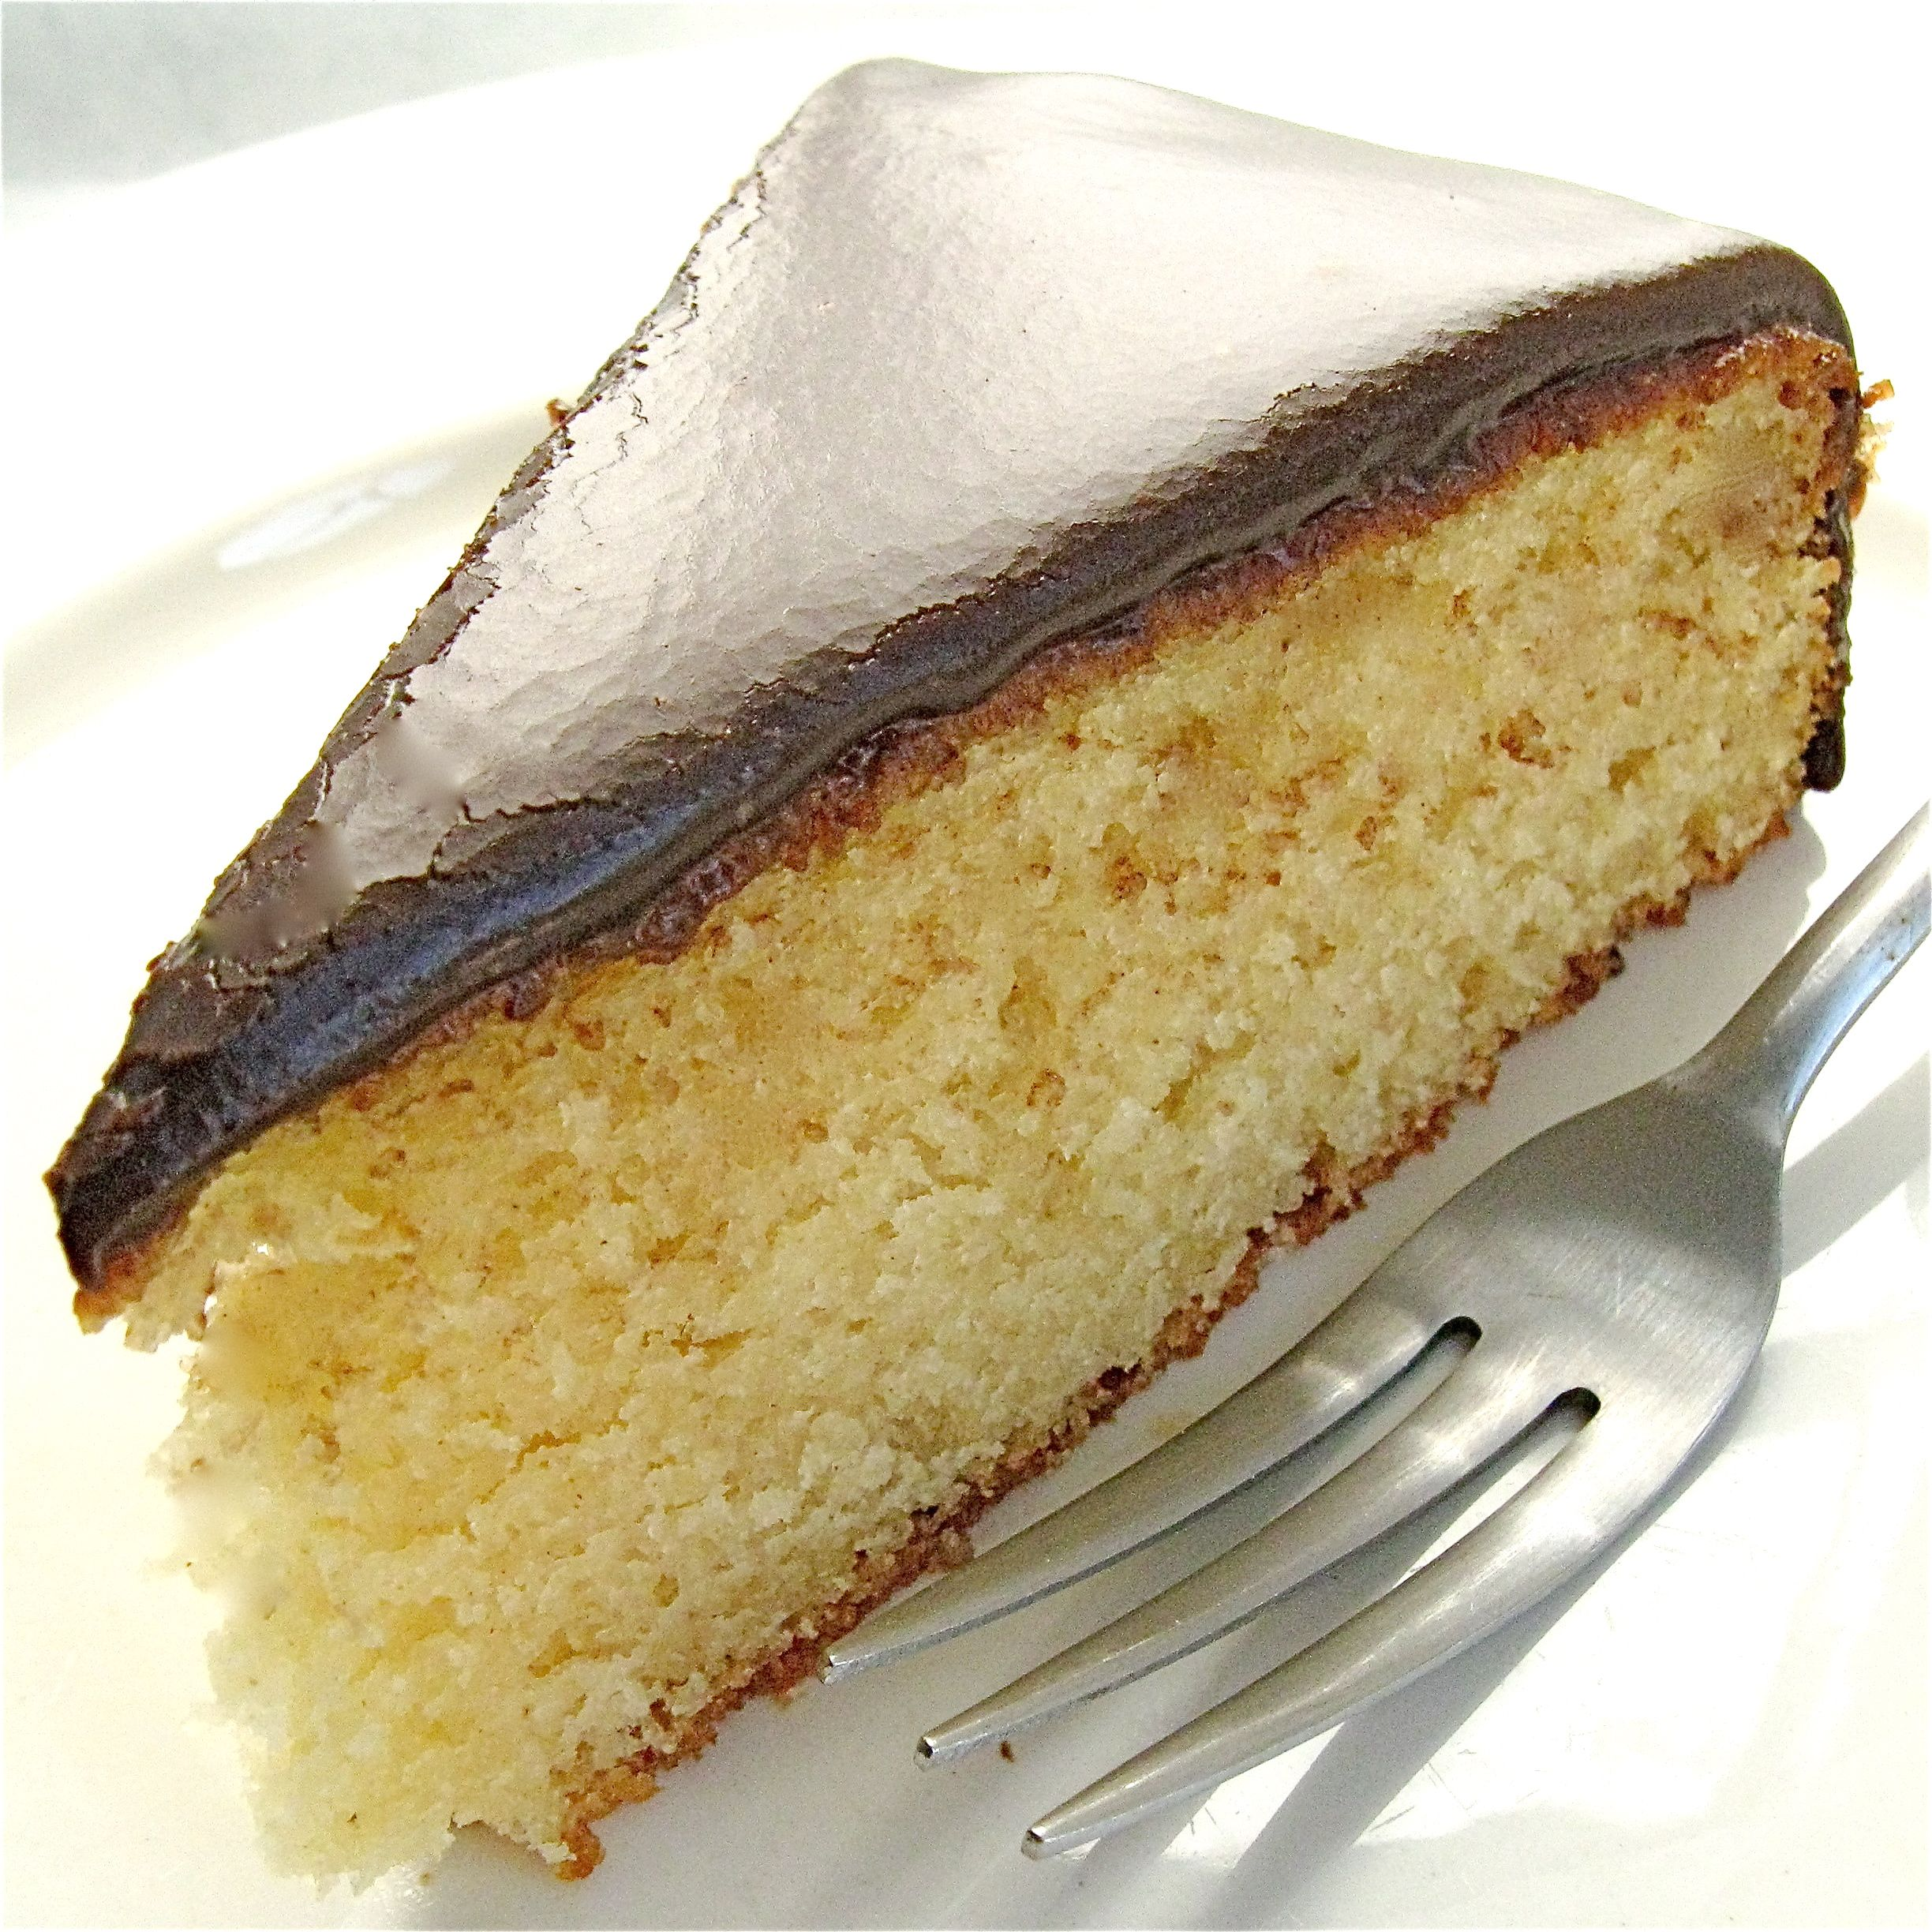 classic yellow cake with fudge icing | Baking | Pinterest